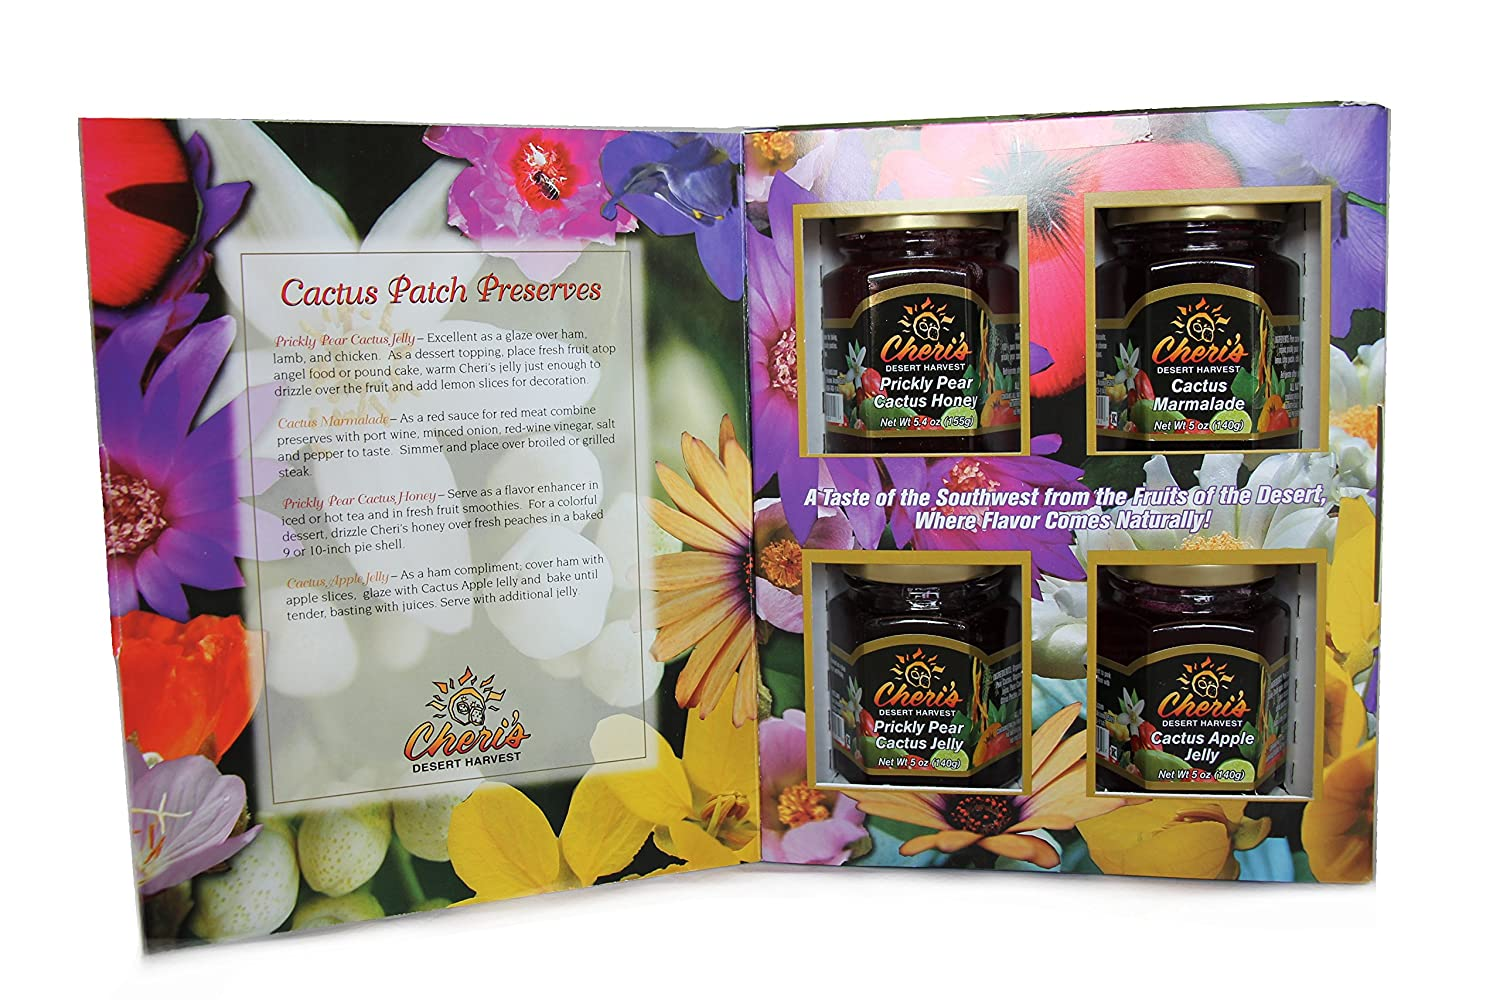 Cheri's Cactus Patch Preserves 2021 autumn and winter new Max 49% OFF